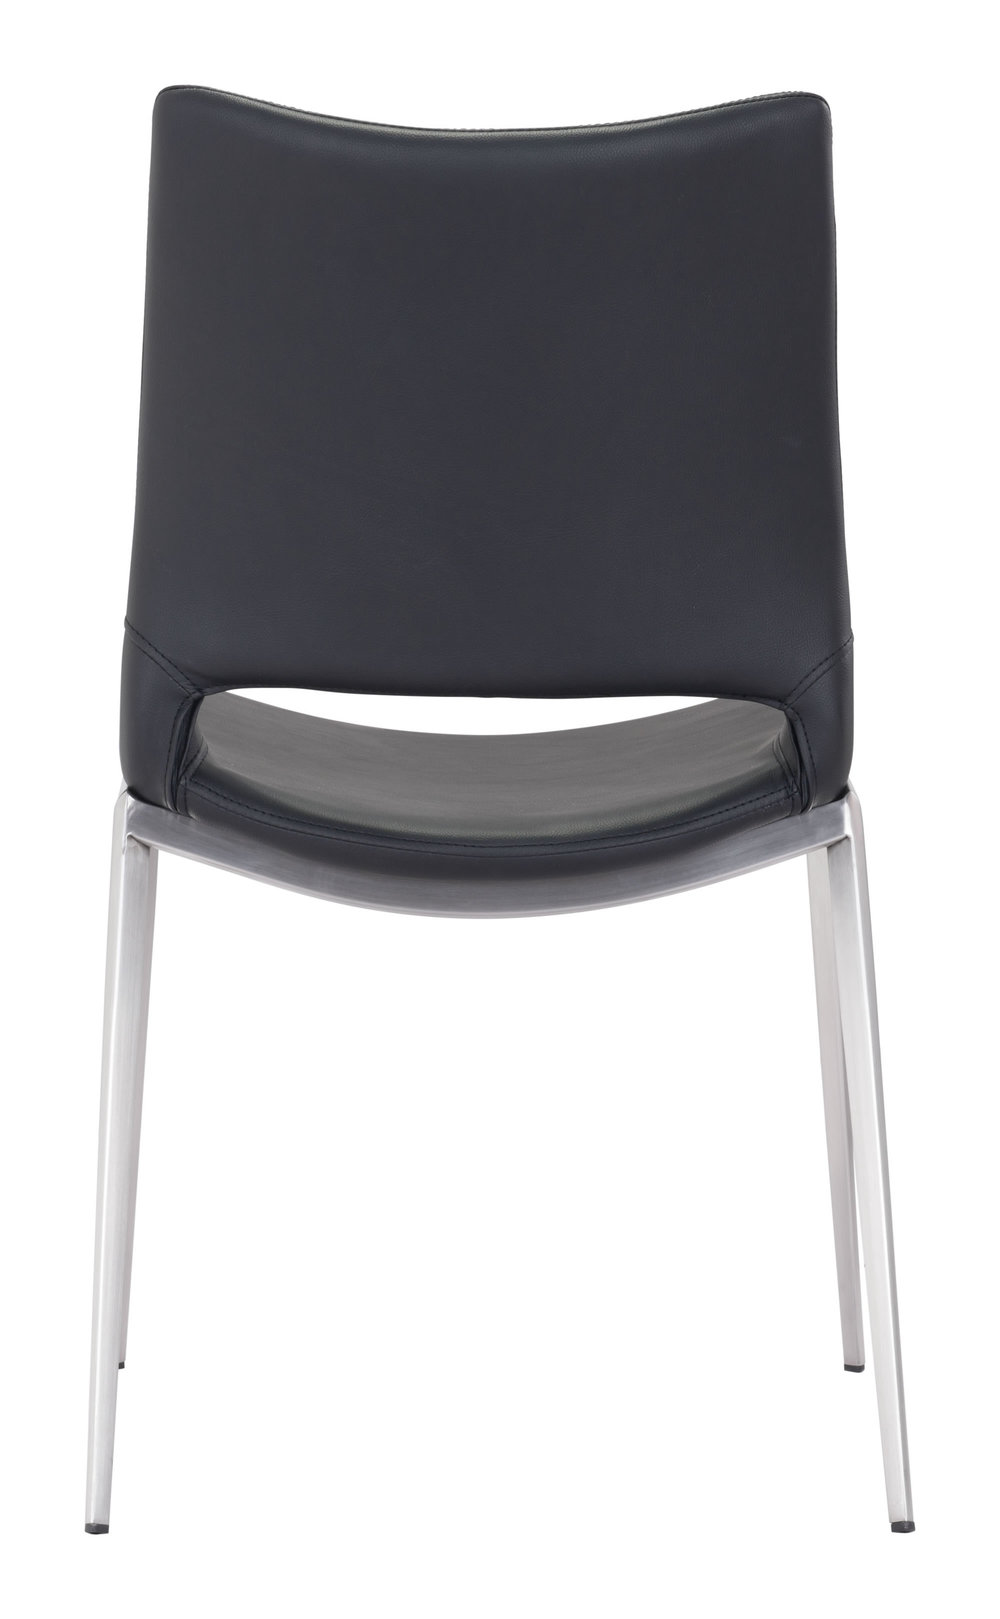 Zuo Modern Contemporary - Ace Dining Chair - Set of 2 - Black & Silver